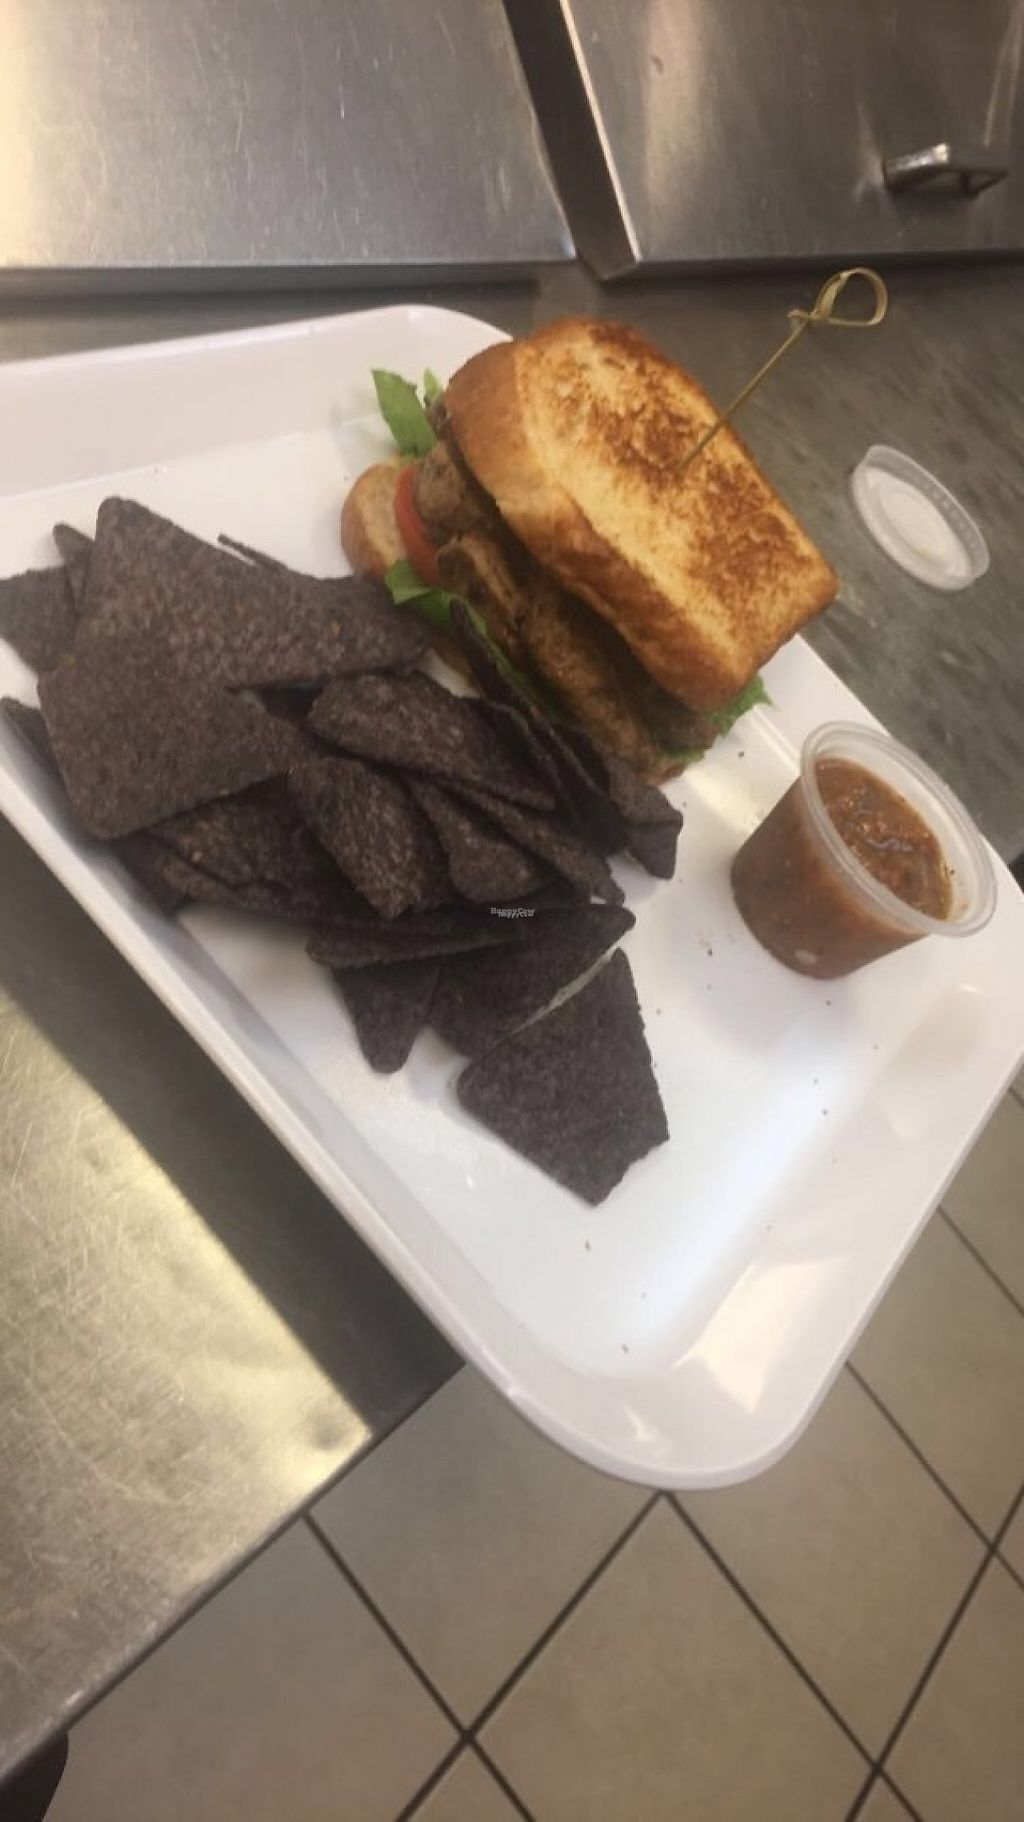 "Photo of Souly Vegan Cafe  by <a href=""/members/profile/yachy10"">yachy10</a> <br/>Fried ""Chicken"" served with blue corn chips and spanish sophrito dip! <br/> February 26, 2017  - <a href='/contact/abuse/image/87664/230527'>Report</a>"